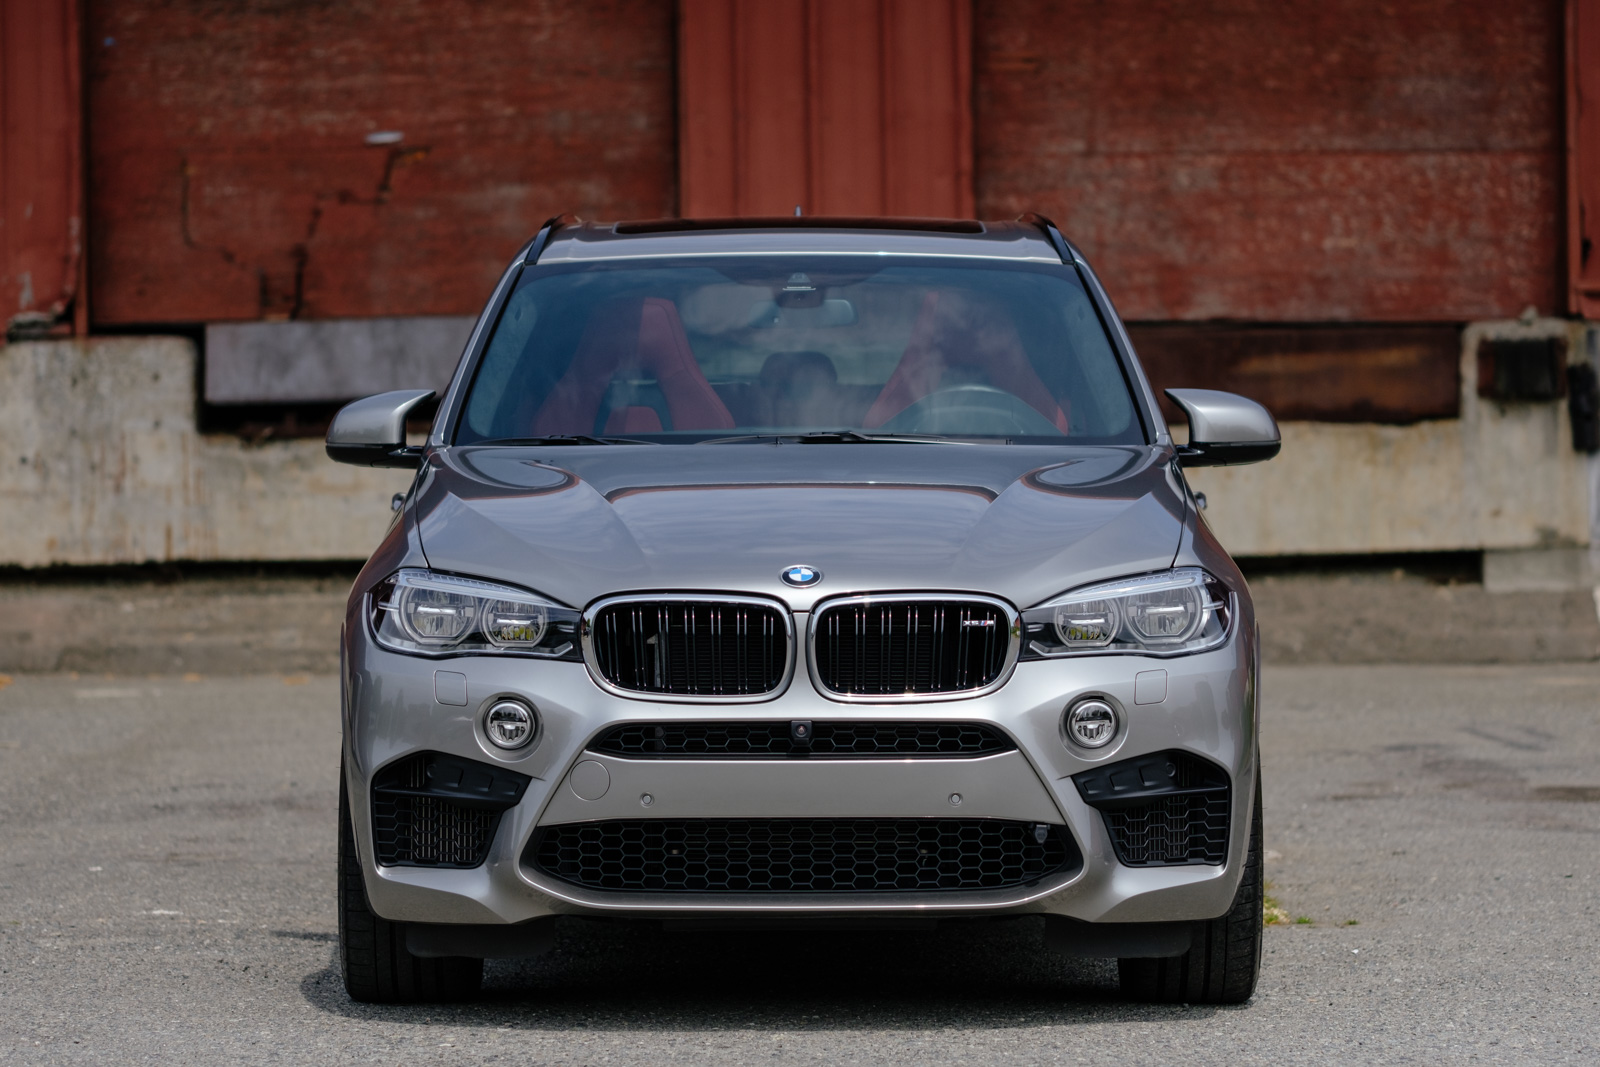 sale suv activity vehicle inventory m drive bmw sports for crevier new at wheel all